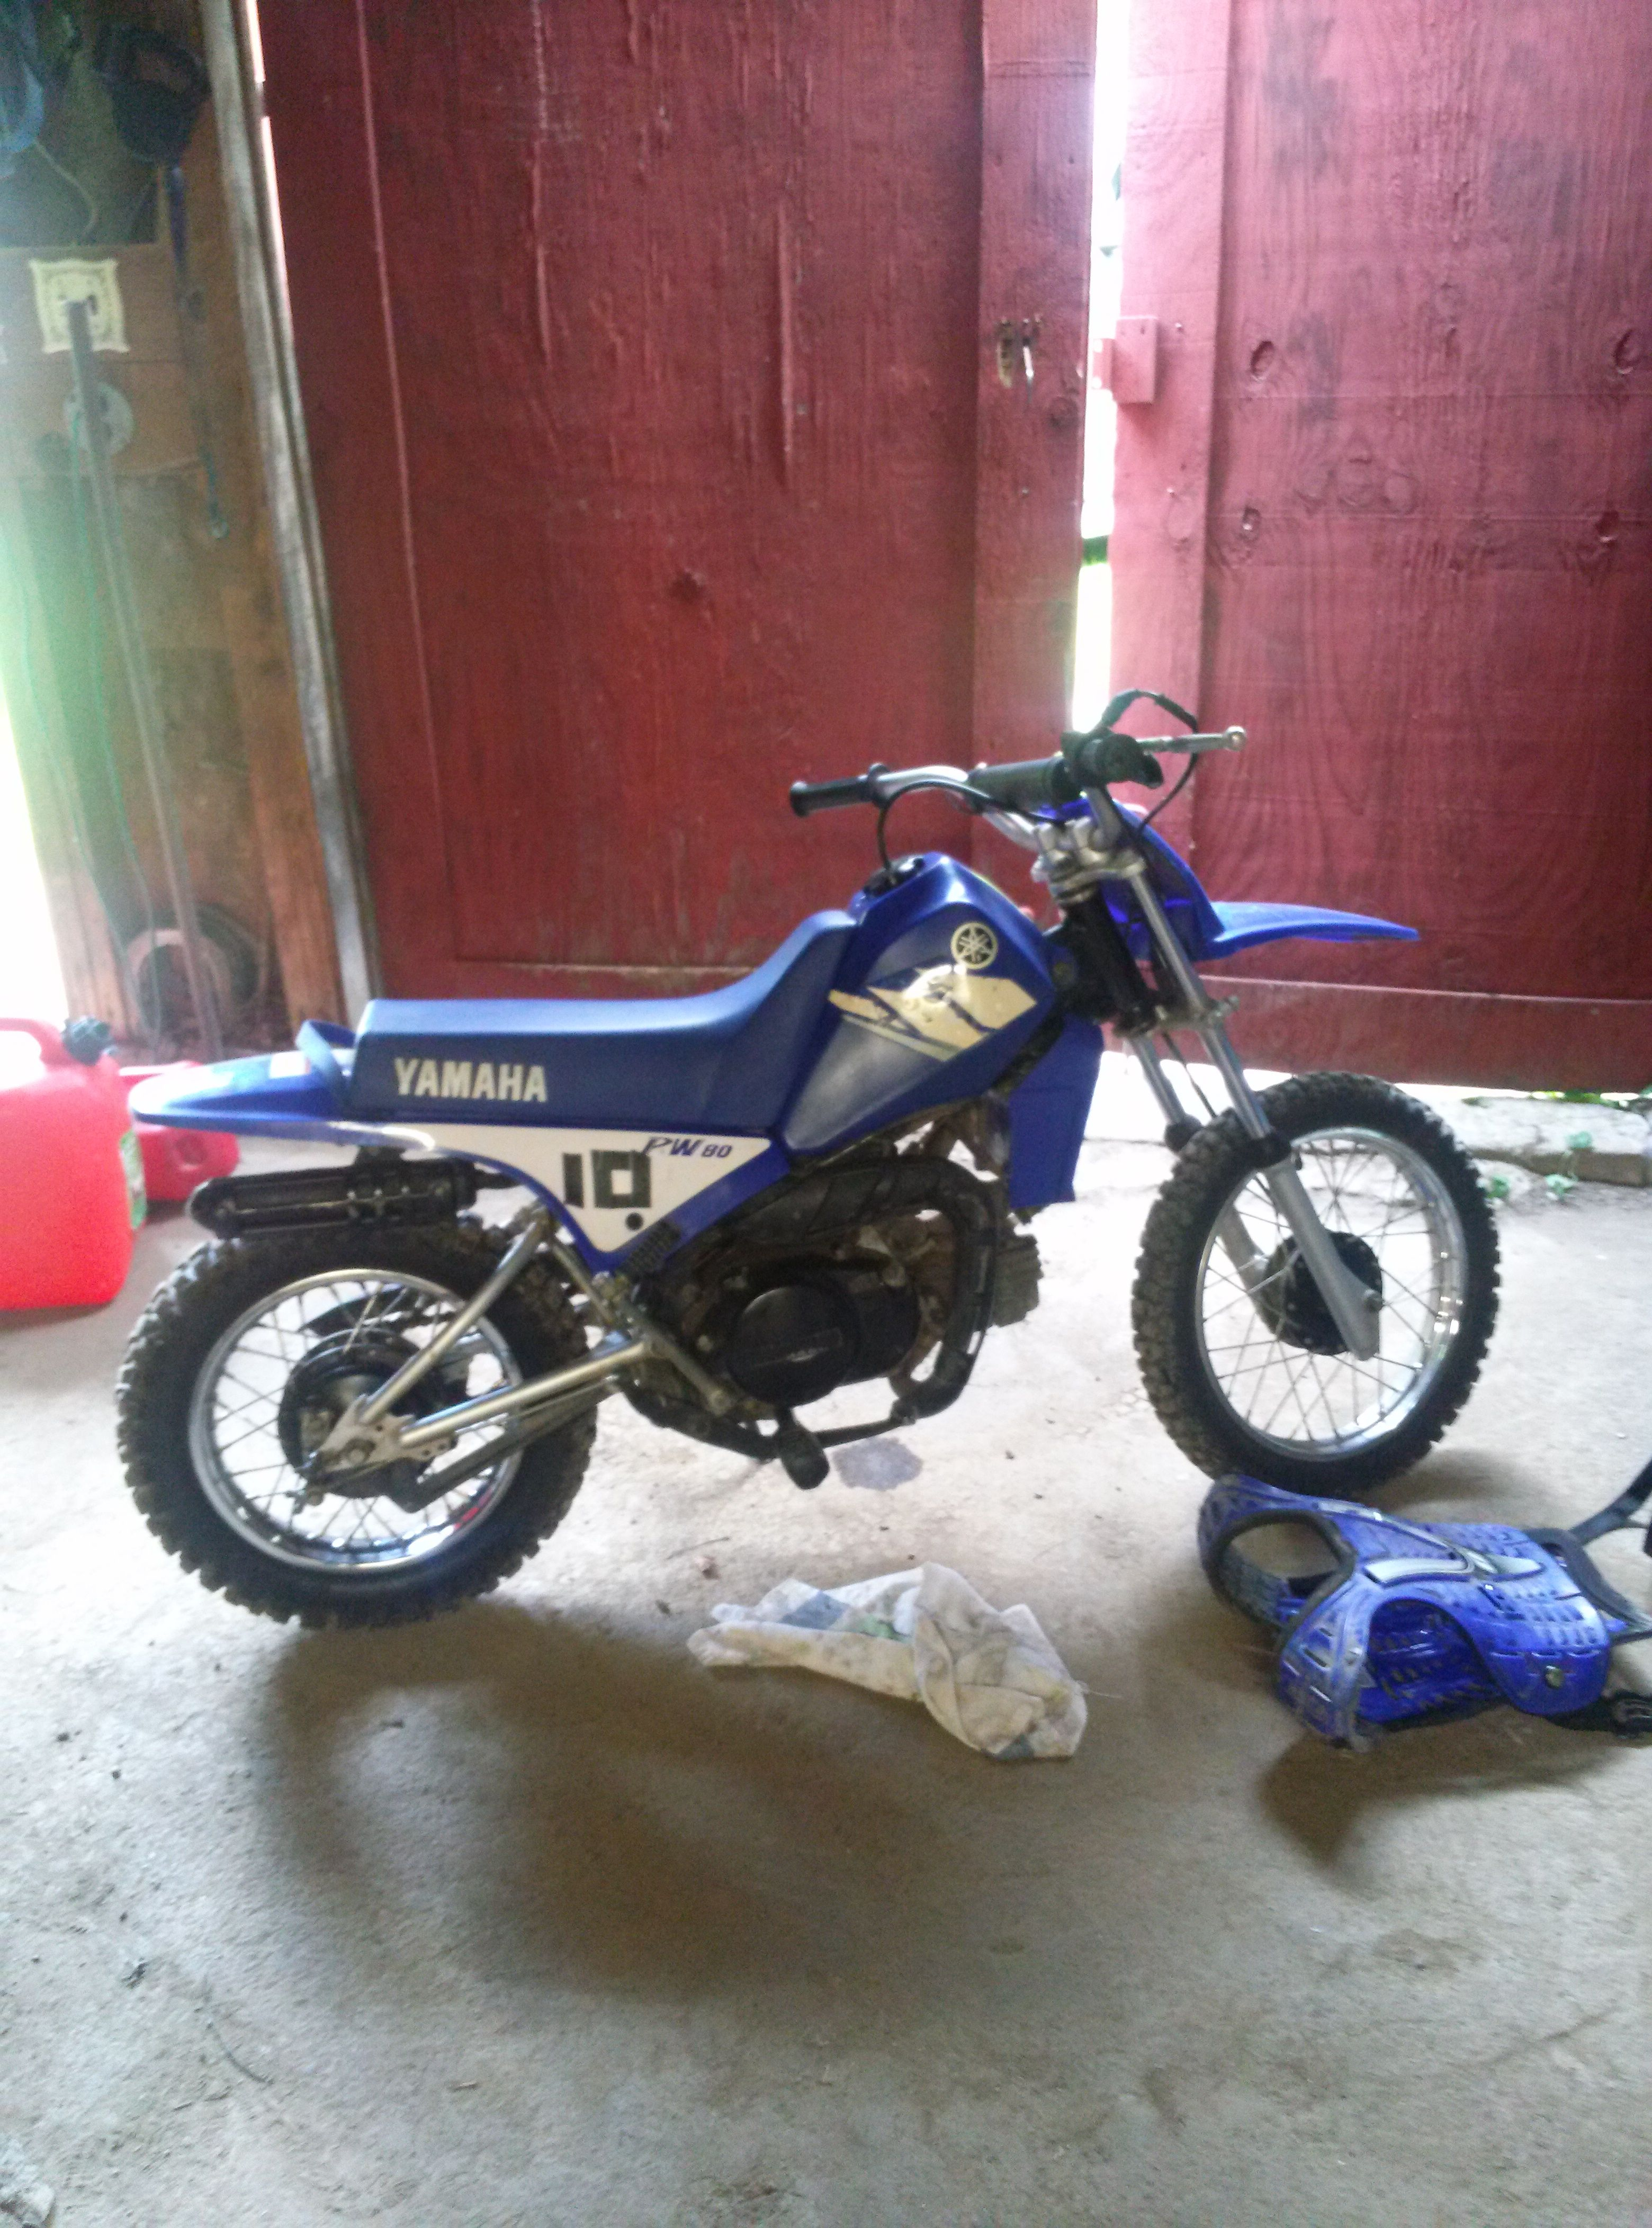 I got a new 80cc yamaha dirt bike | Dirt bikes | 80cc dirt bike